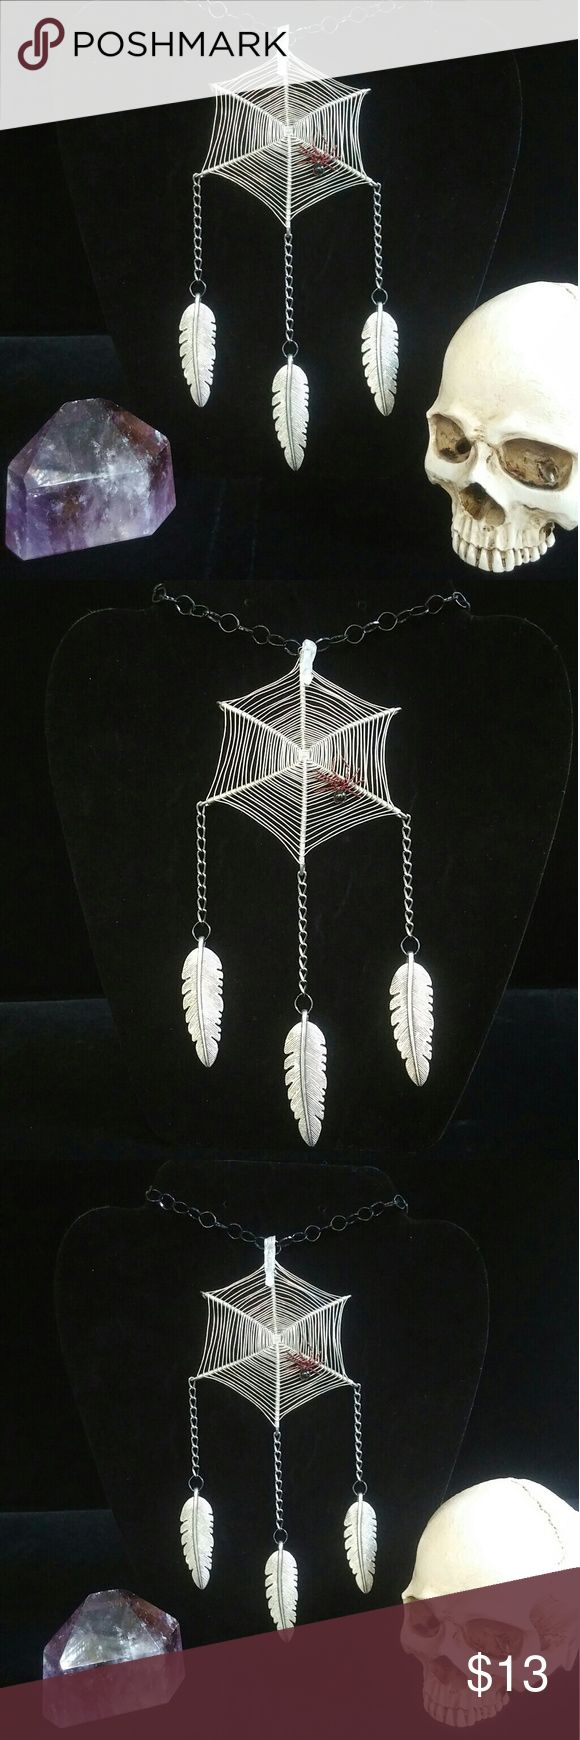 Crystal Web Dream Catcher Web is made of stainless steel, tarnish resistant chain and feathers are of tibetan silver. Clear quartz point lays on top. Accessories